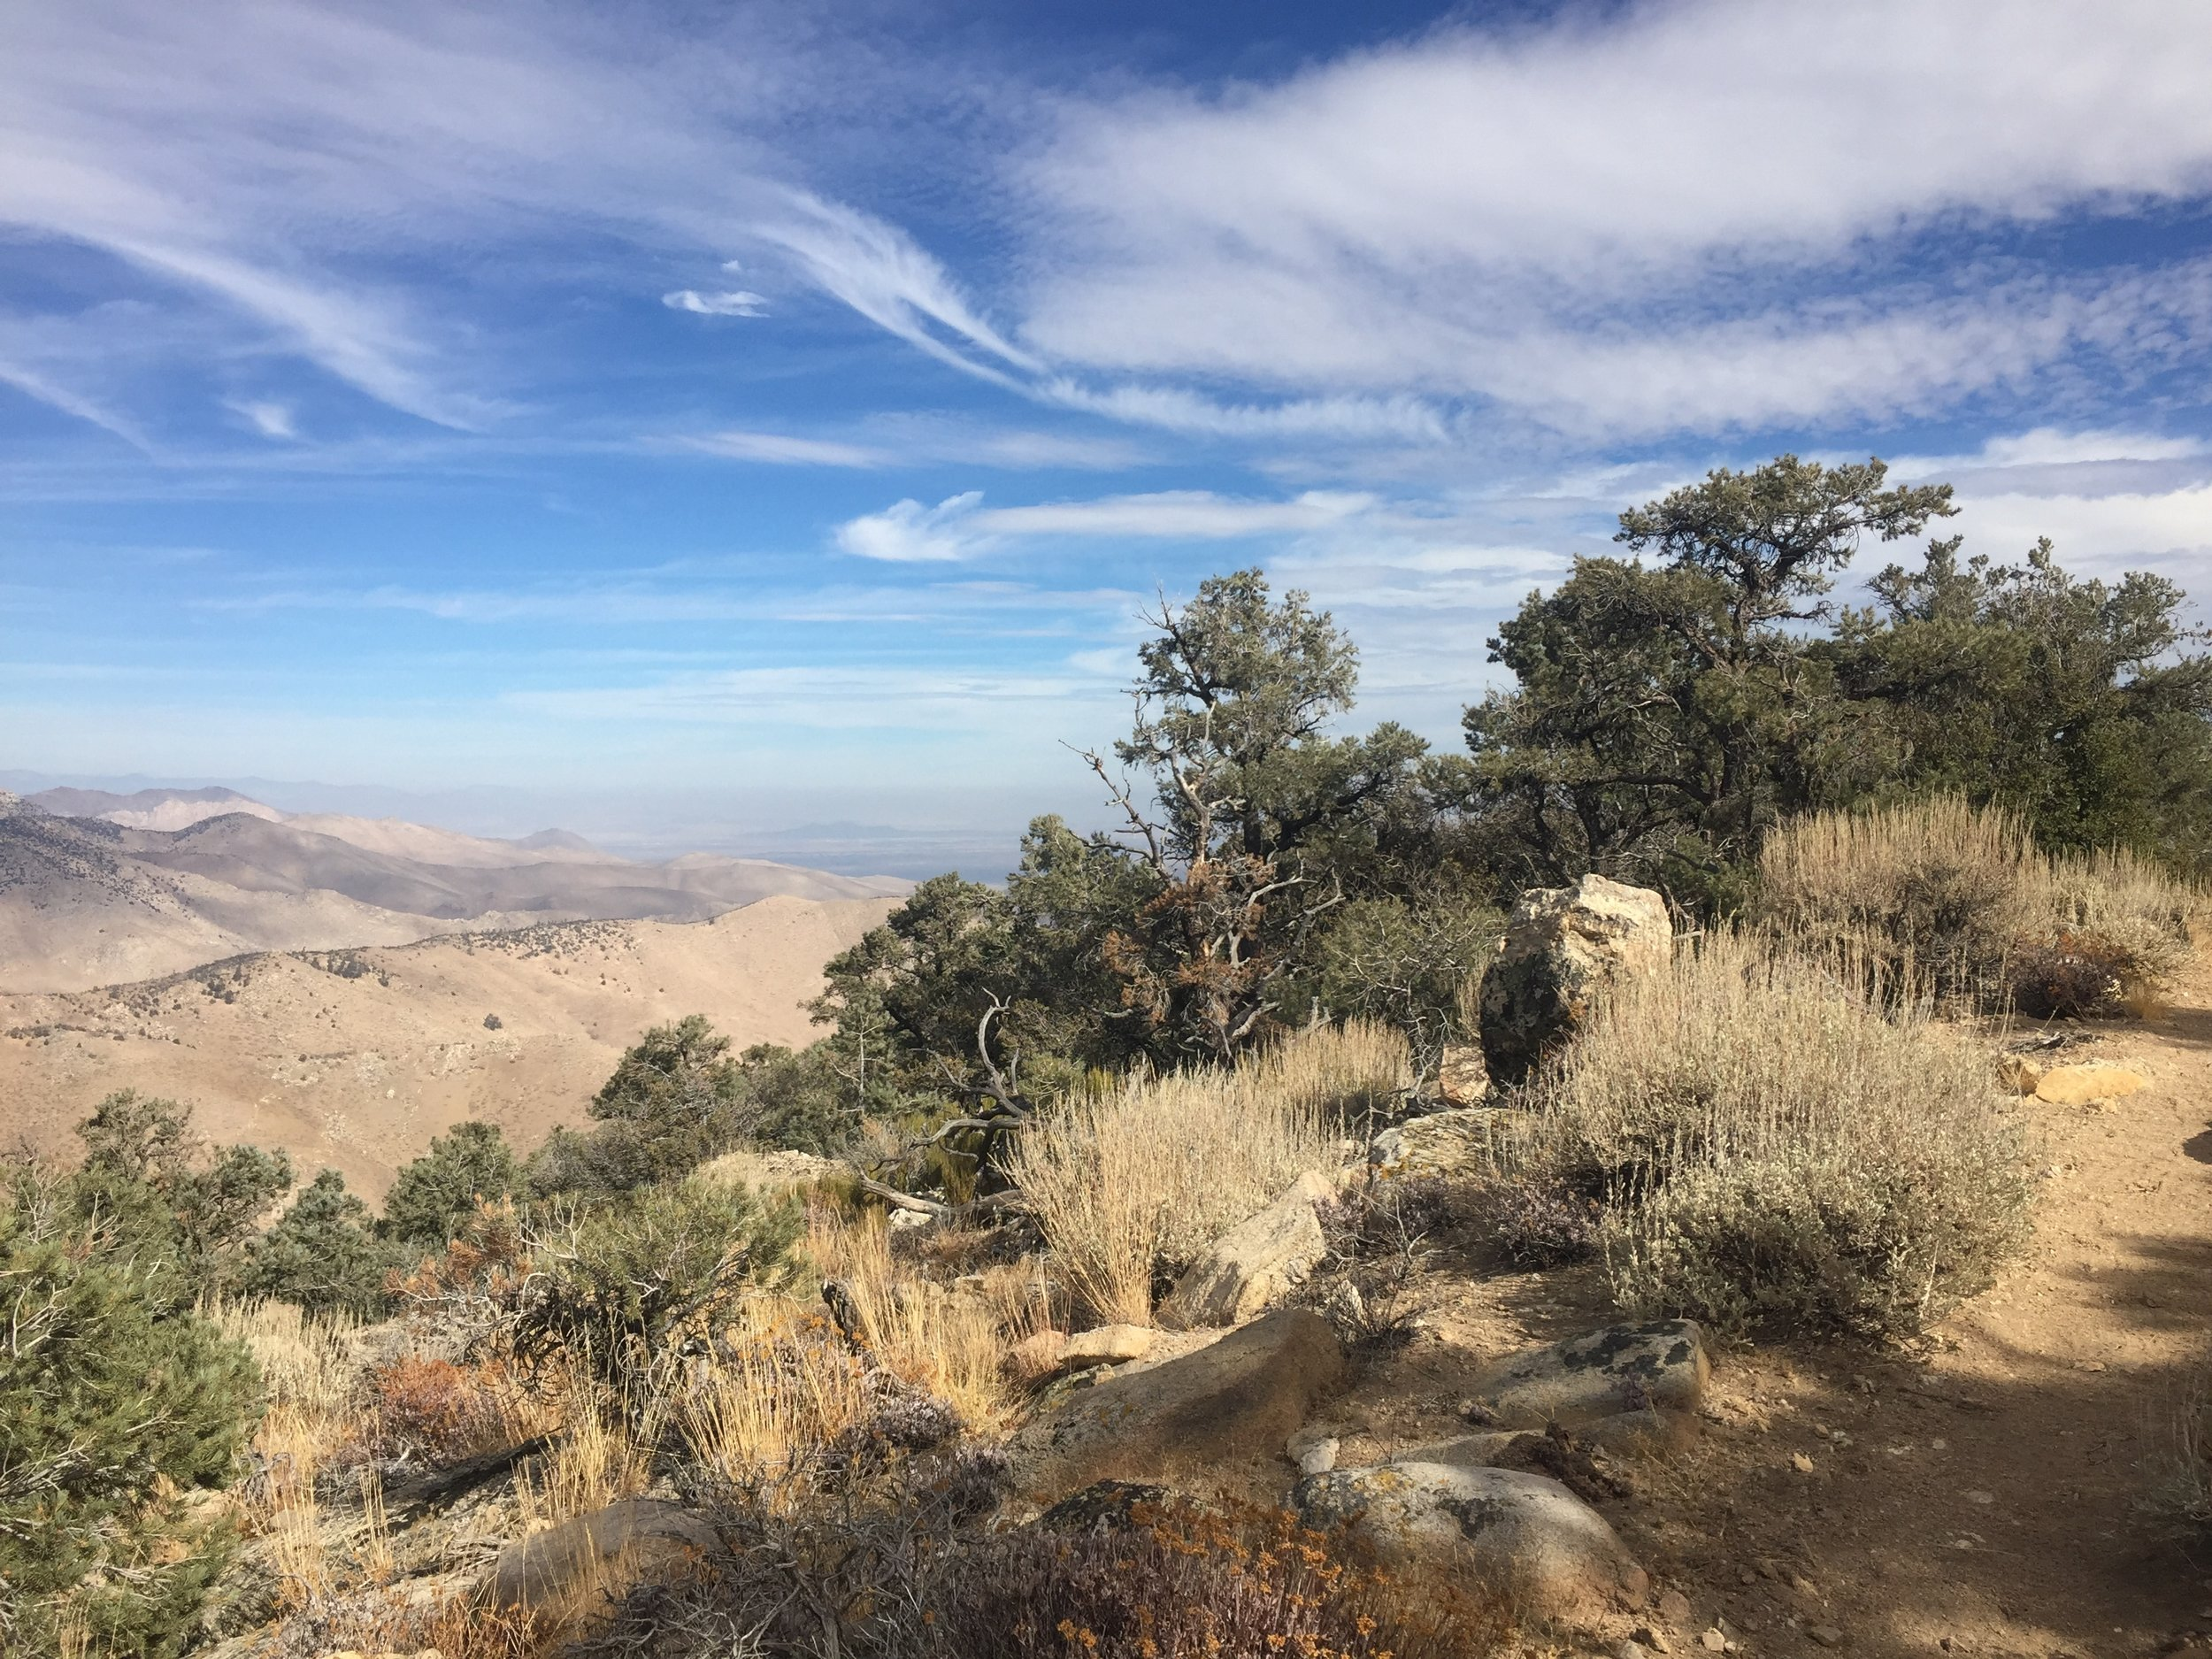 Pinyon pines and broad canyon views